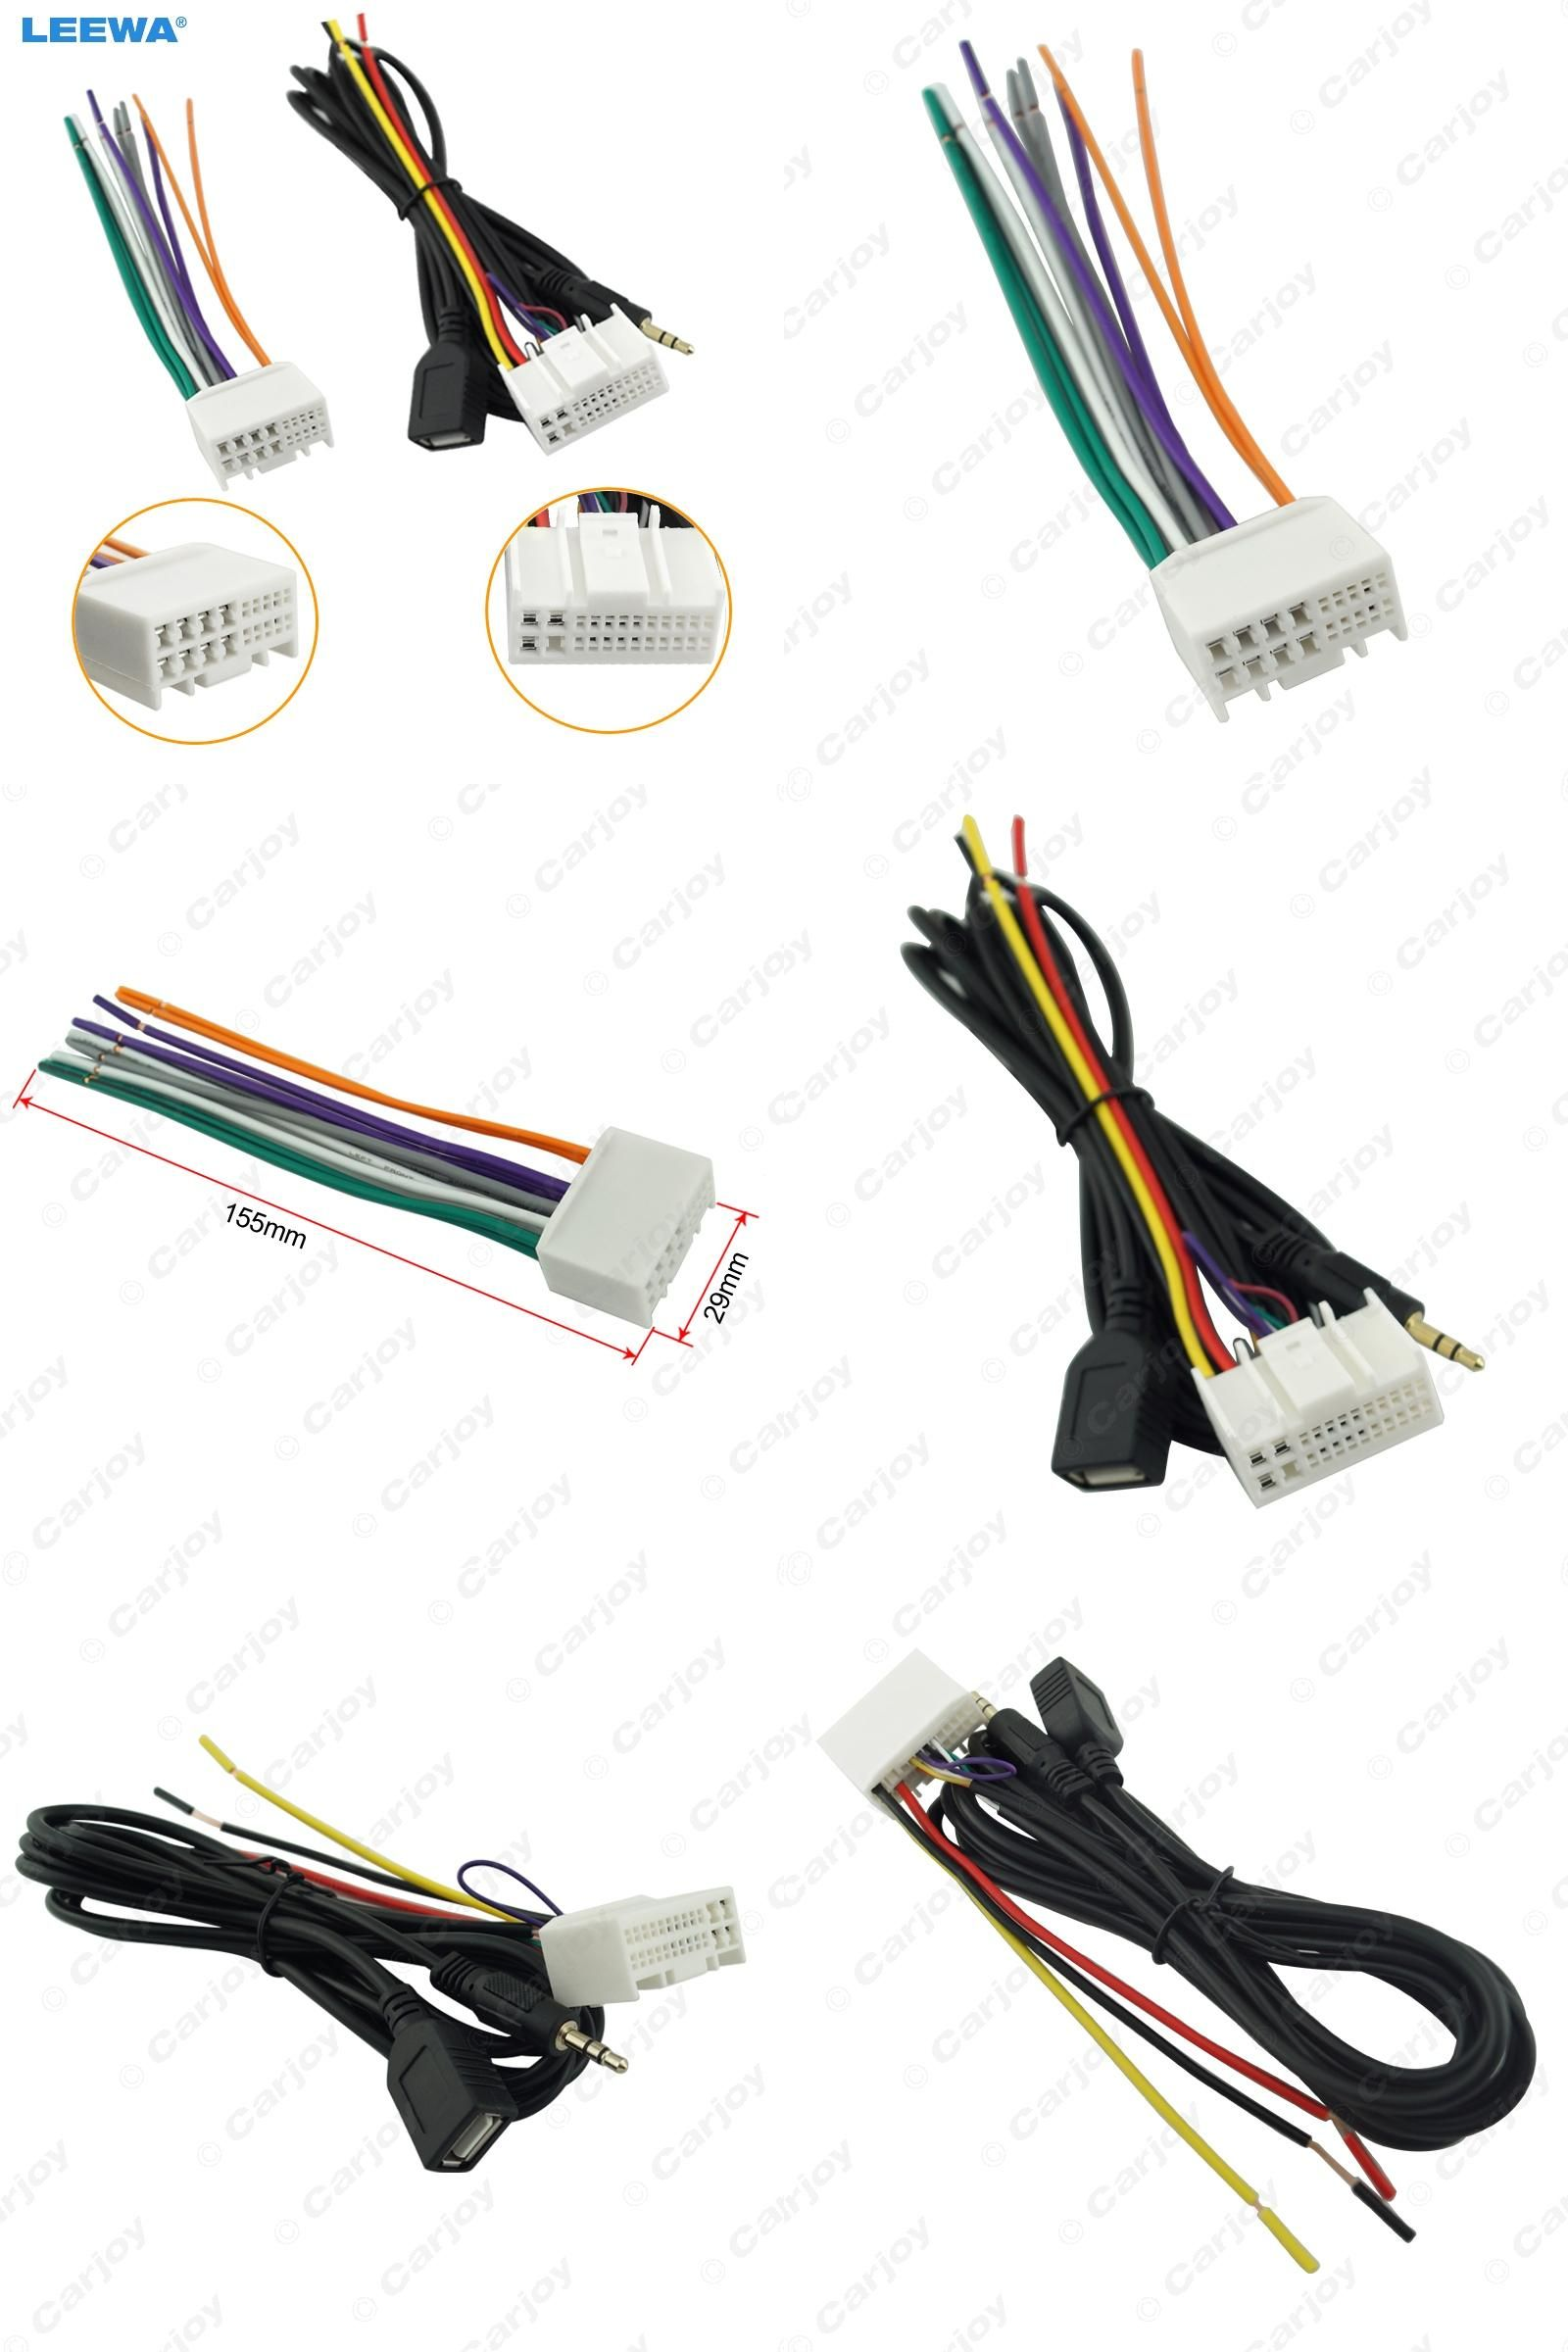 65bba15fb3a8d9bc4f1b698bf8827601 visit to buy] car audio cd stereo wiring harness adapter with usb where to buy a trailer wiring harness at panicattacktreatment.co